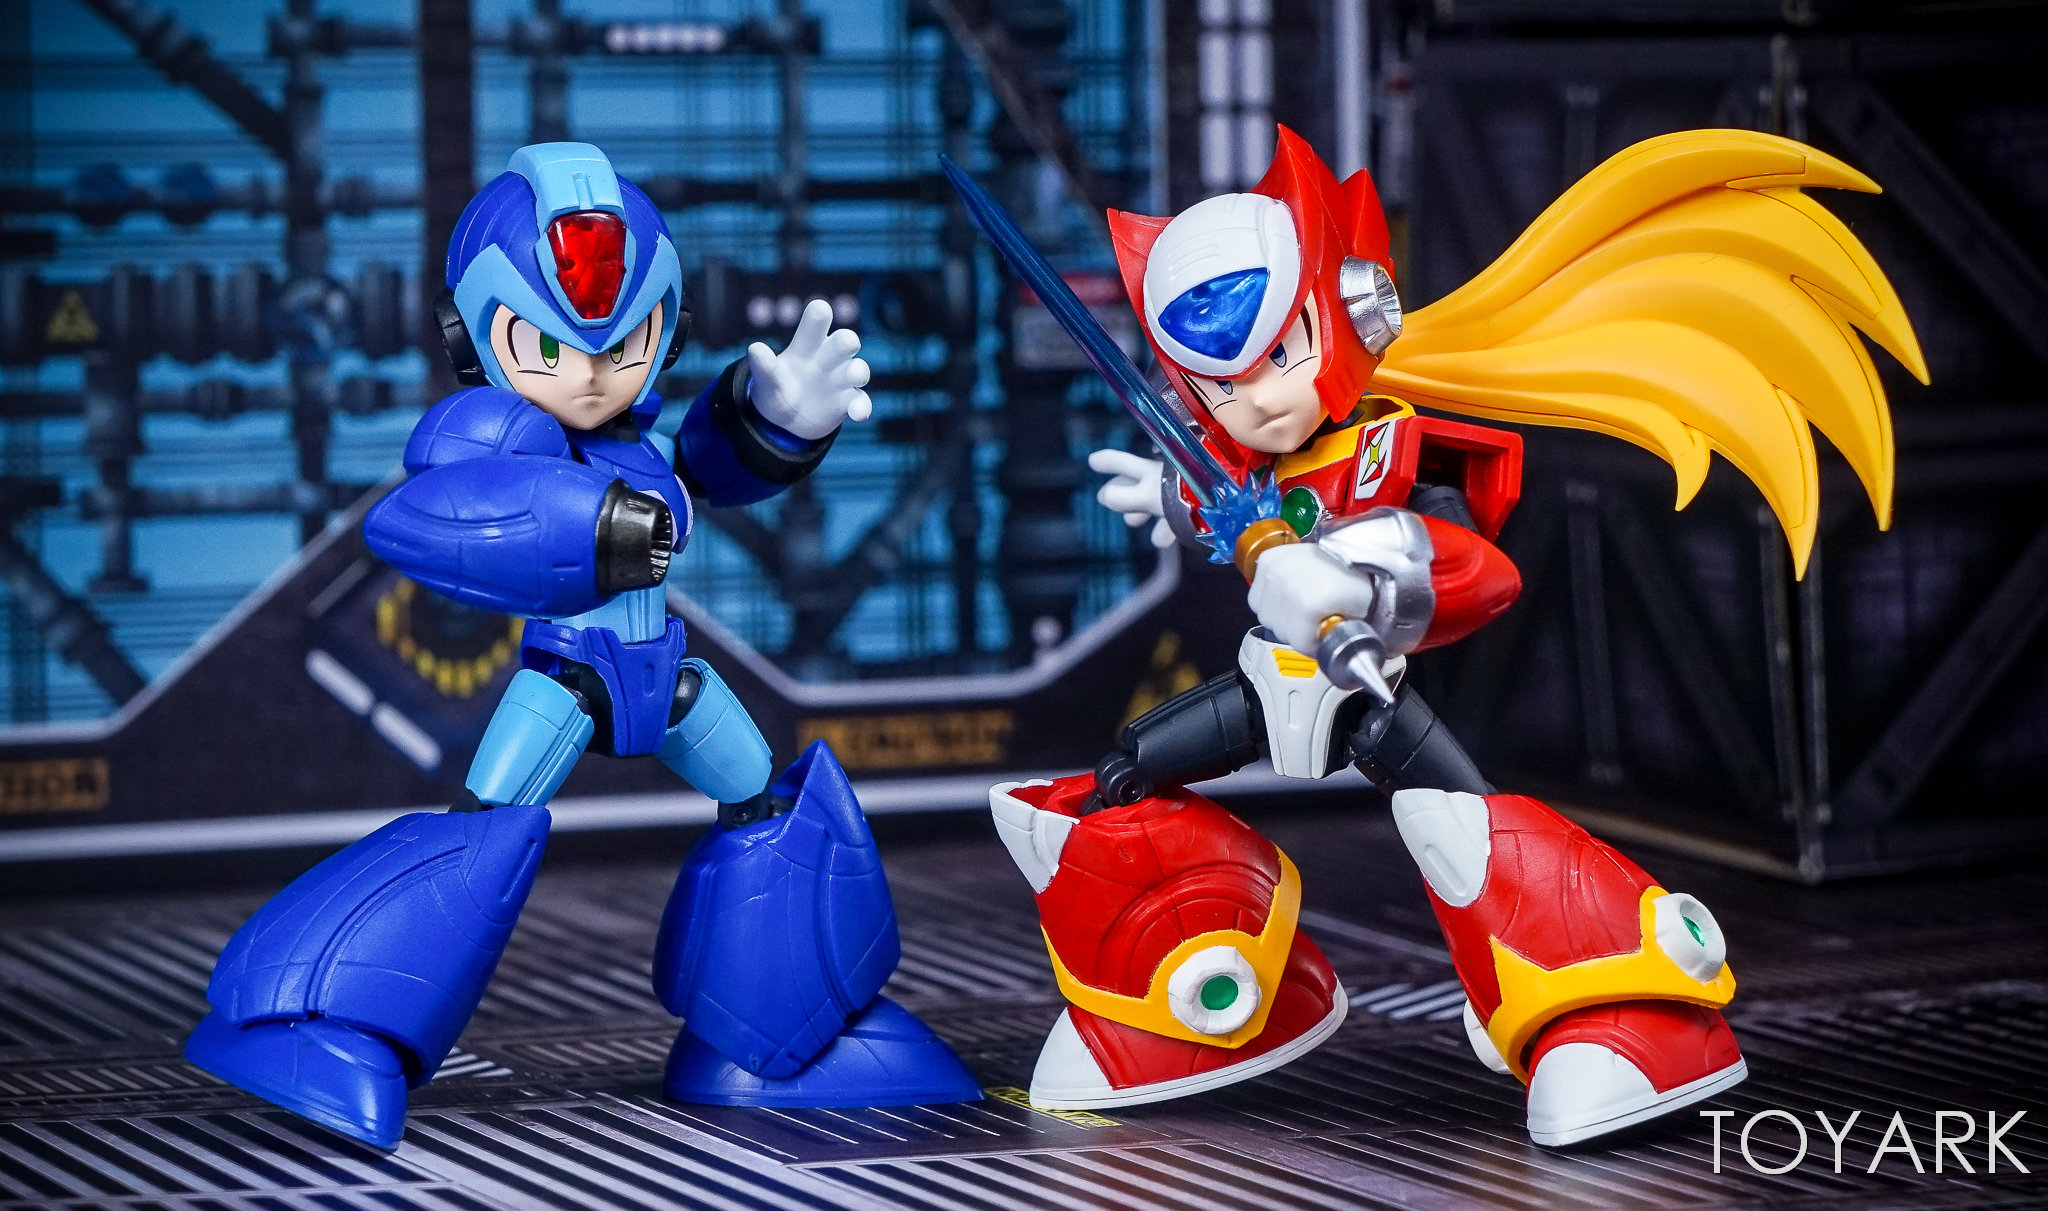 http://news.toyark.com/wp-content/uploads/sites/4/2017/11/Mega-Man-X-NX-Edge-Style-039.jpg